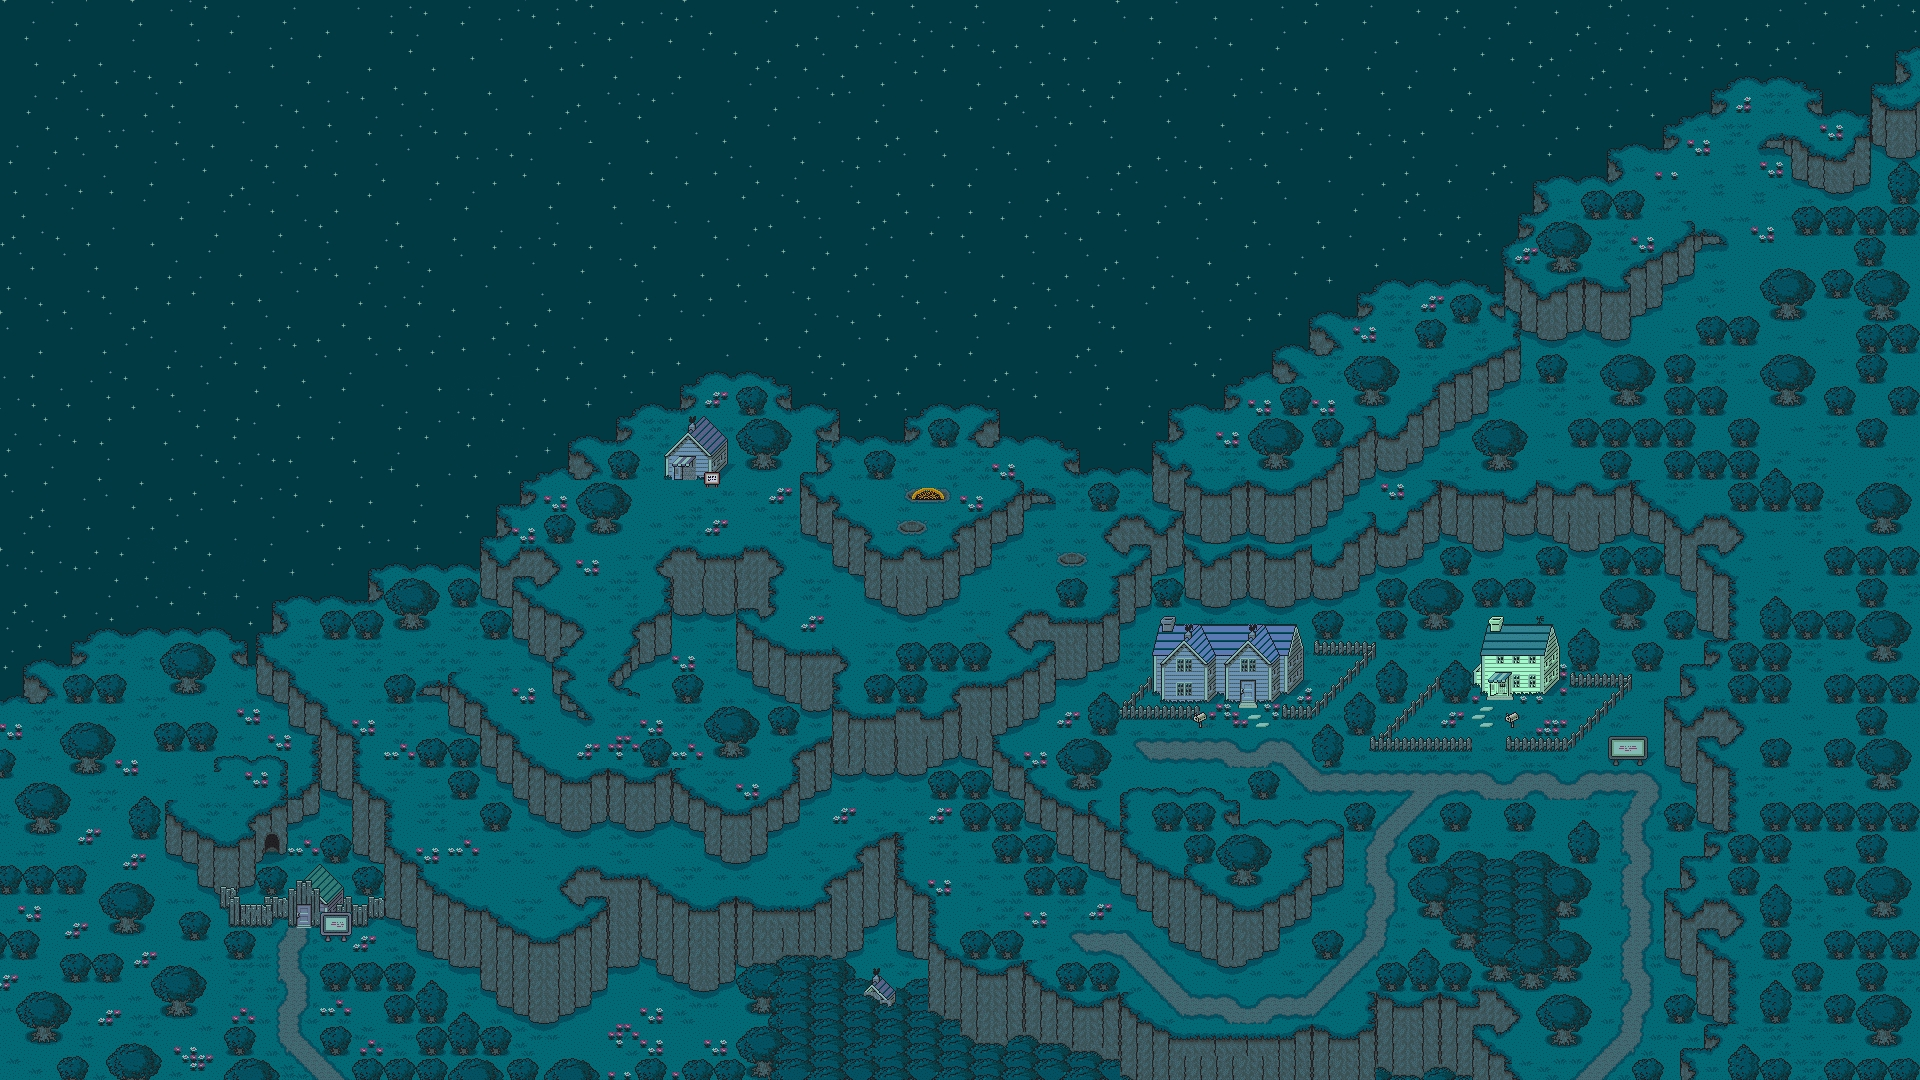 44 Earthbound HD Wallpapers Backgrounds 1920x1080